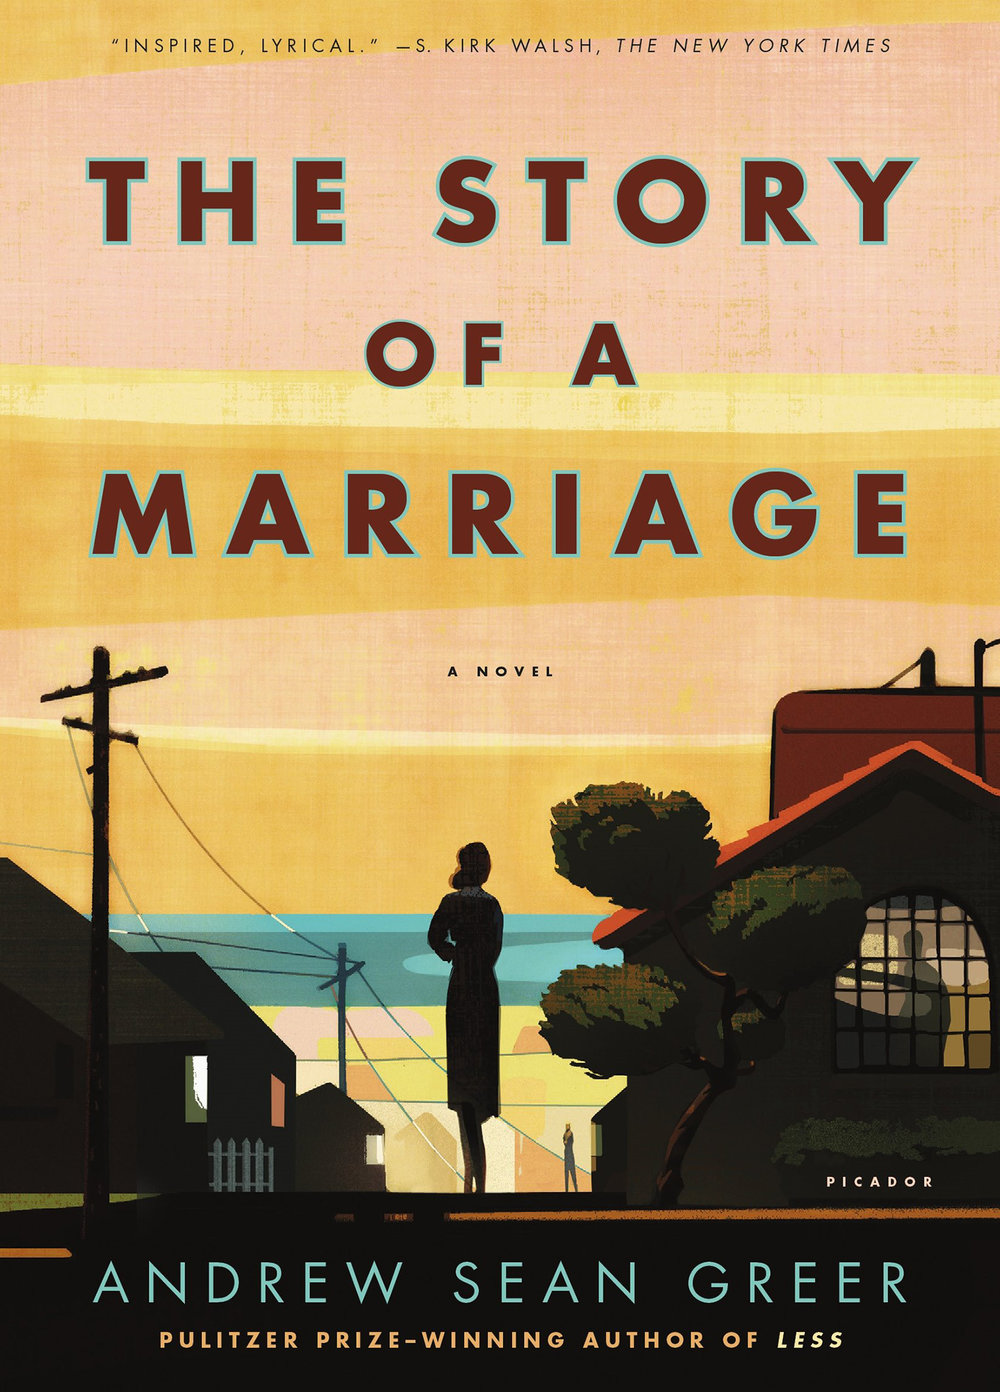 Another great book recommended by Barbara L. ...Not only is the writing incredible, but the story takes place in my neighborhood!